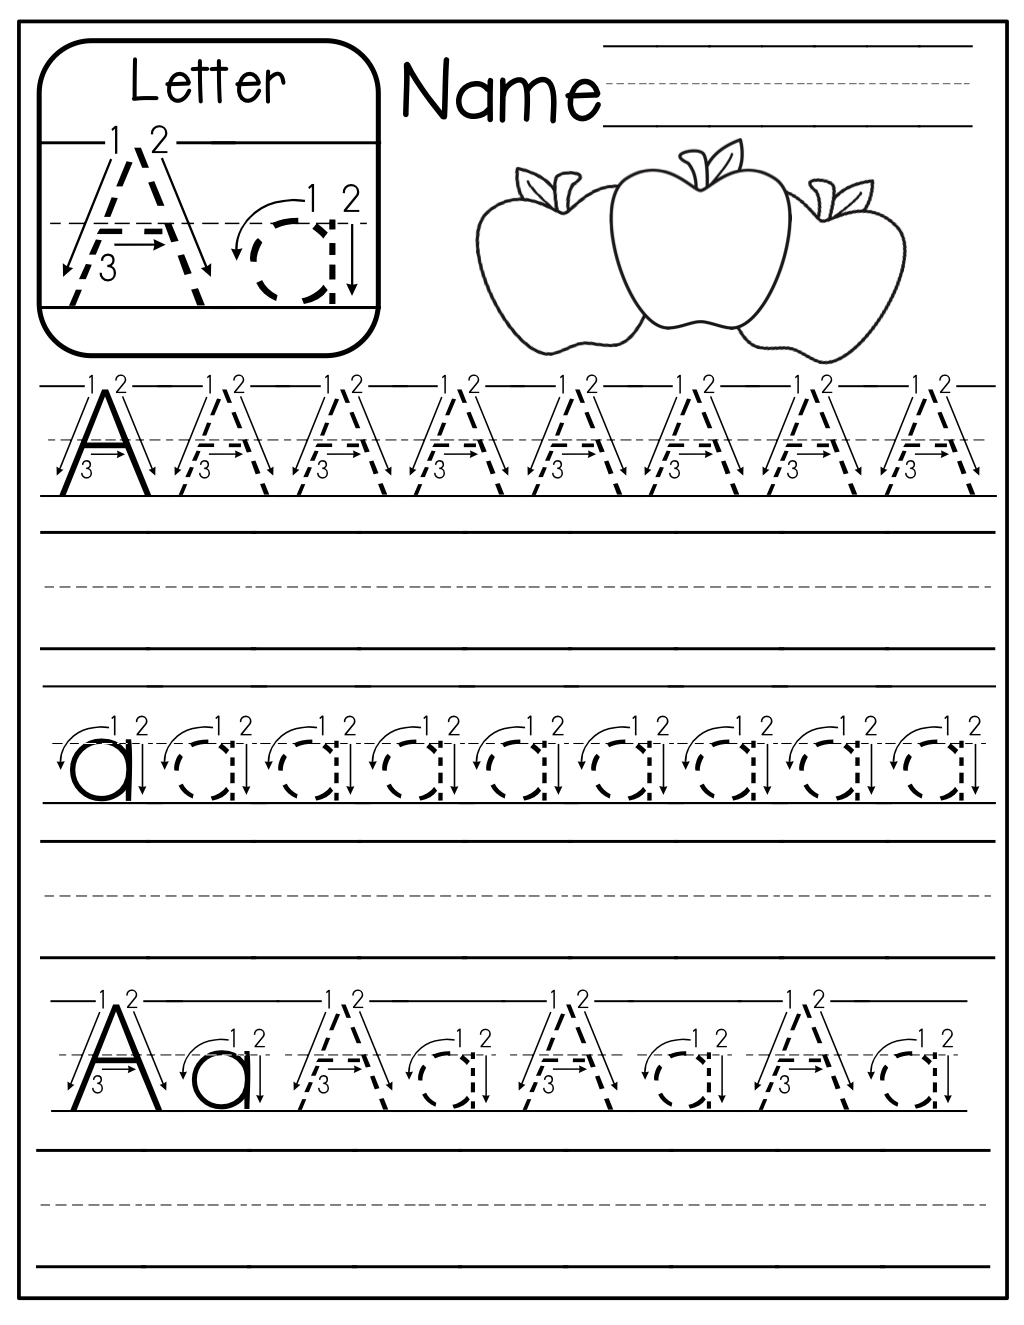 Freebie: A-Z Handwriting Practice Pages! | Kindergarten